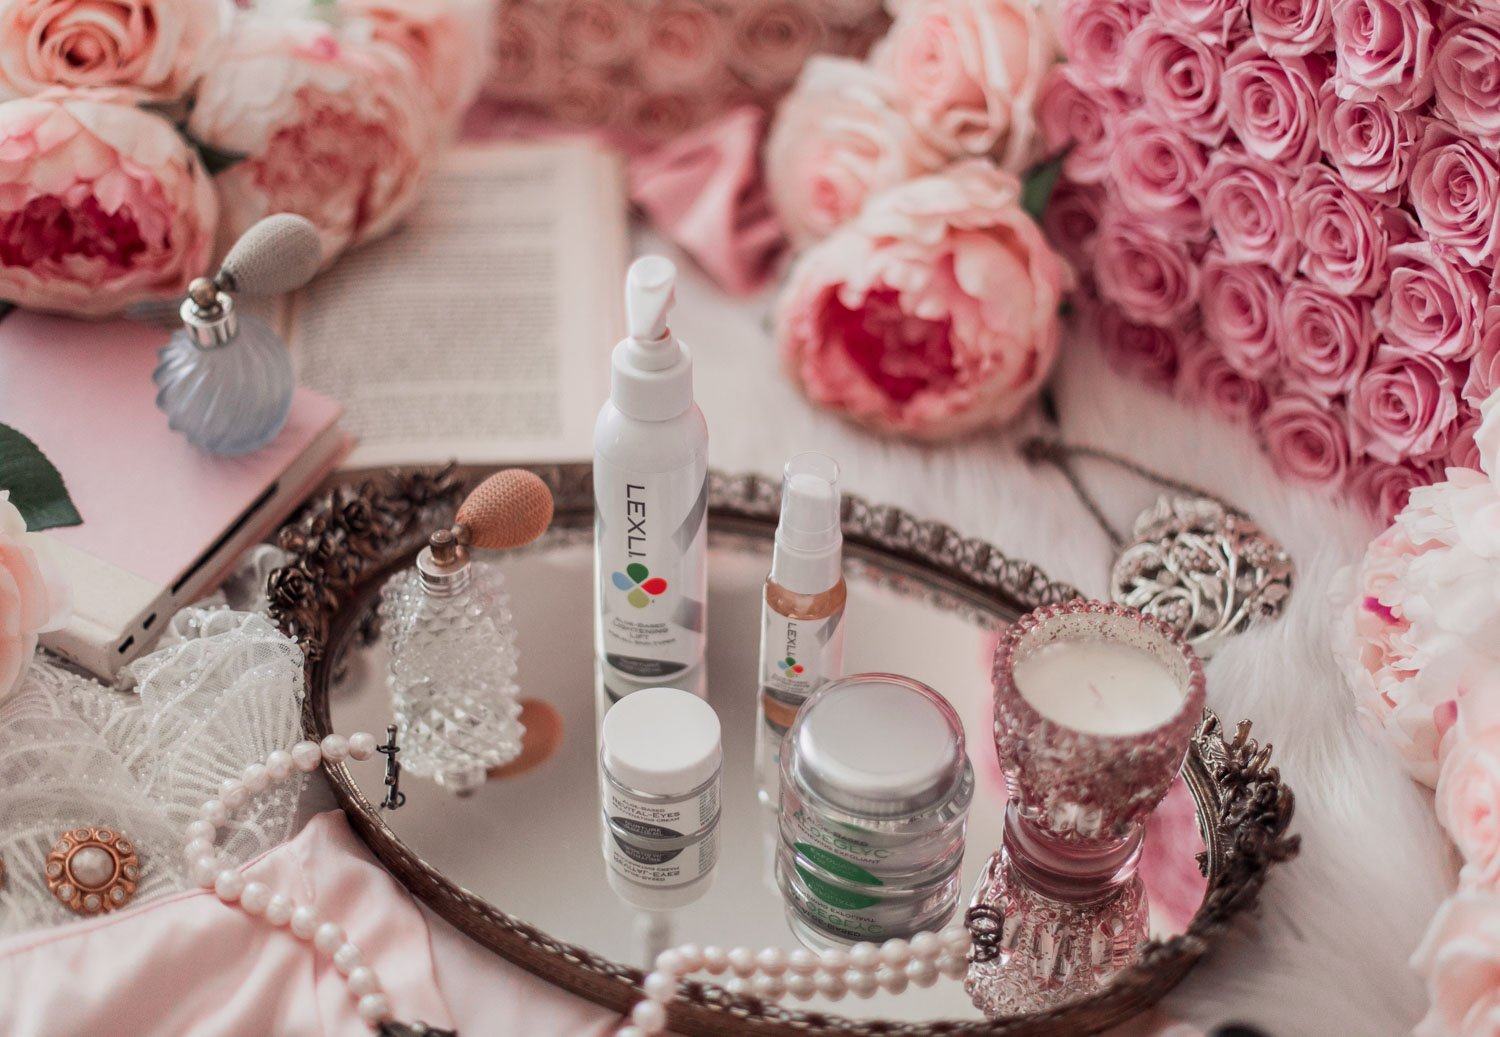 Elizabeth Hugen of Lizzie in Lace shares her self-care routine with Lexli skincare